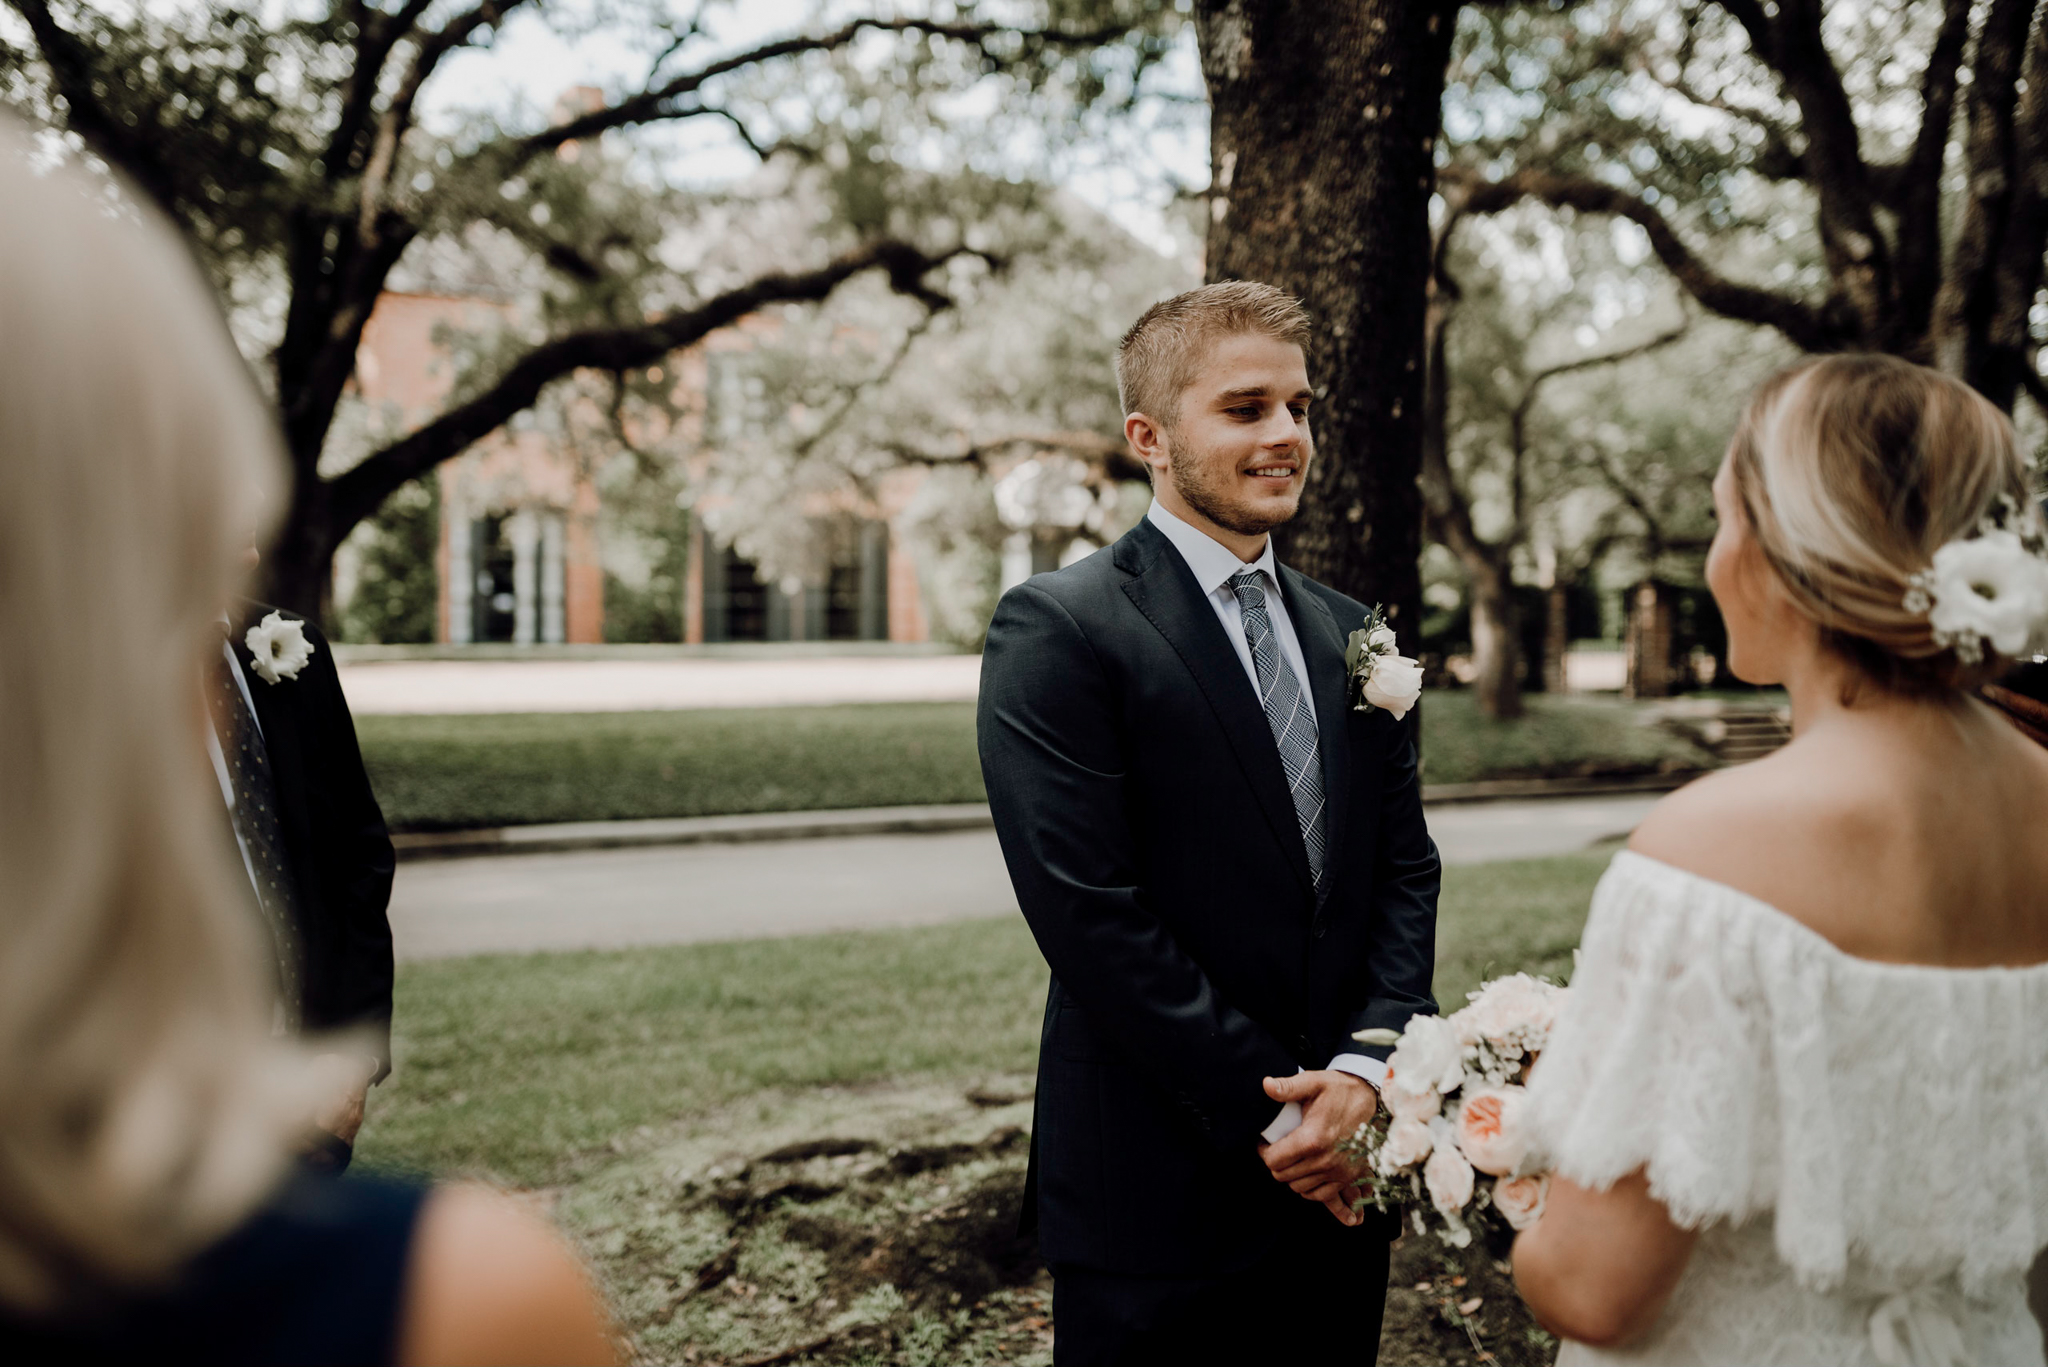 Houston Wedding Photographer-North Blvd Intimate Elopement- Houston Wedding Photographer -Kristen Giles Photography-17.jpg